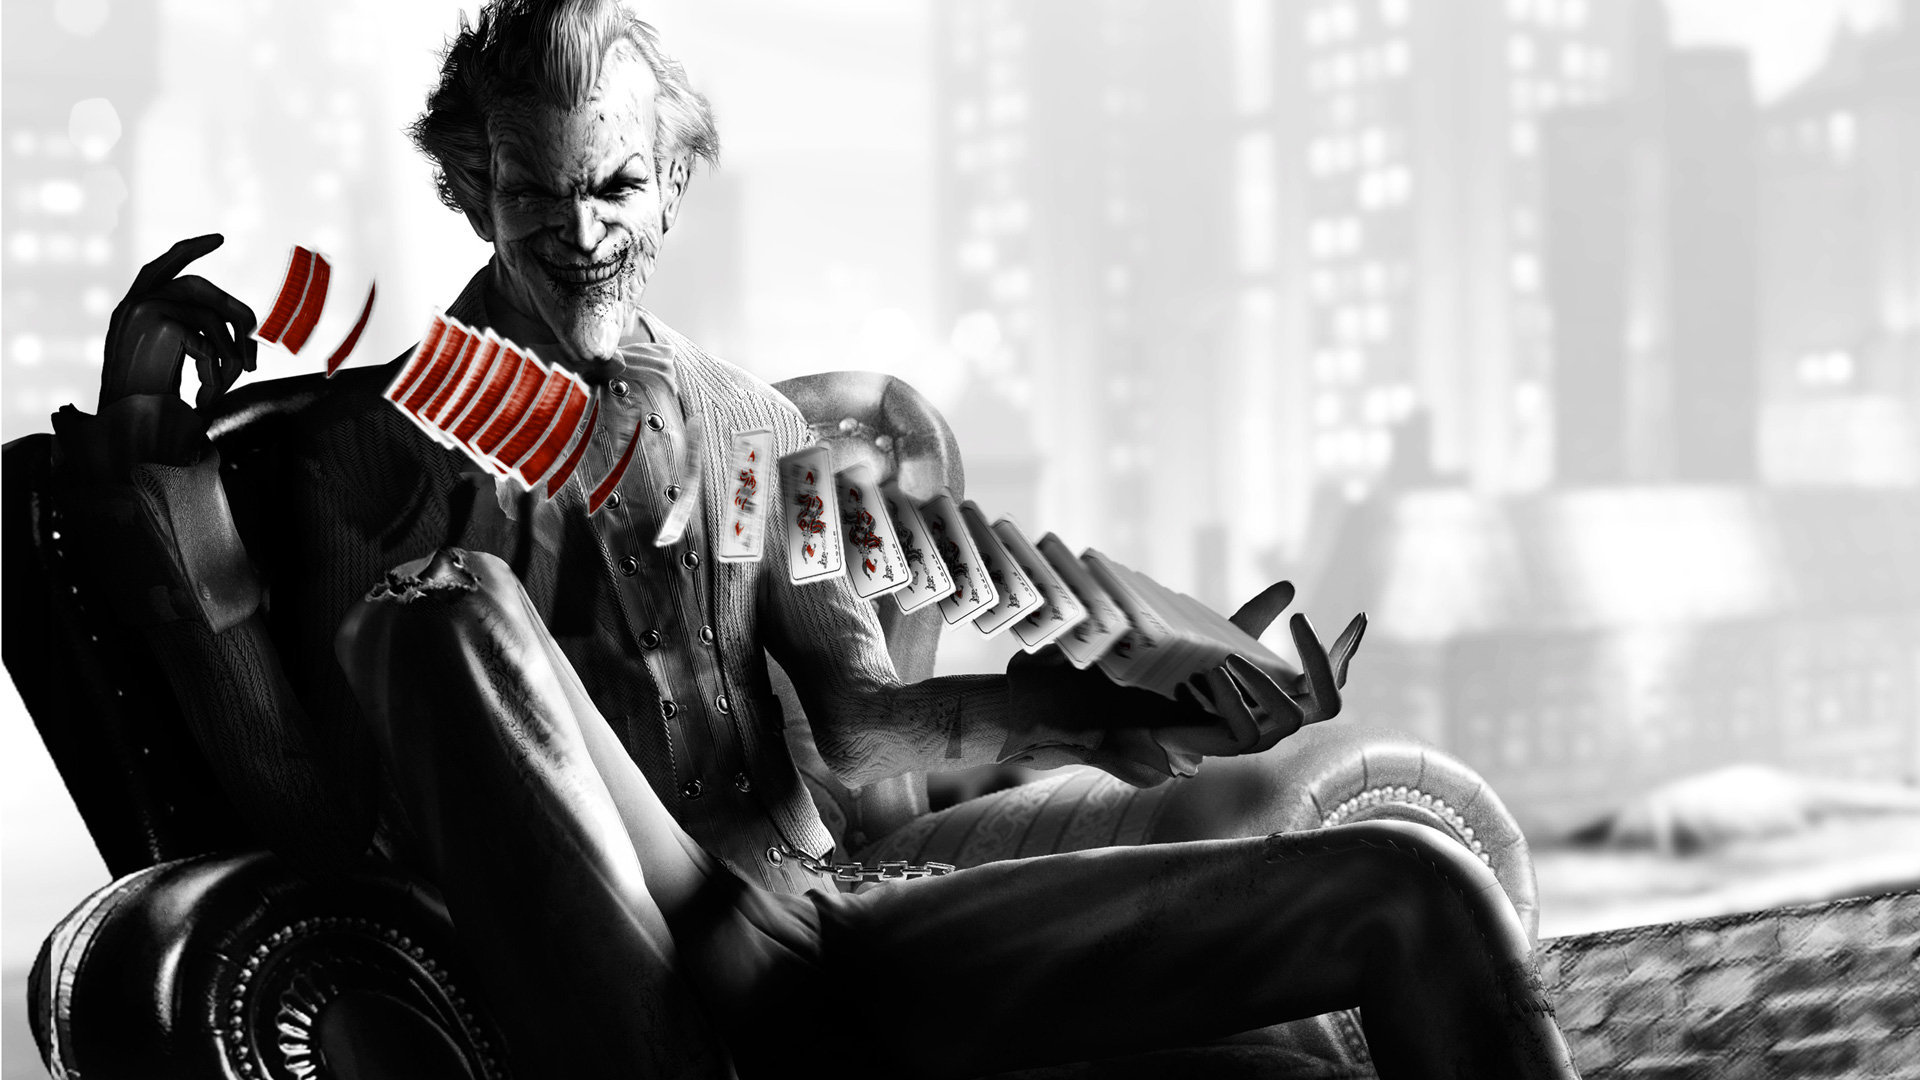 Joker HD Wallpapers 1080p - WallpaperSafari